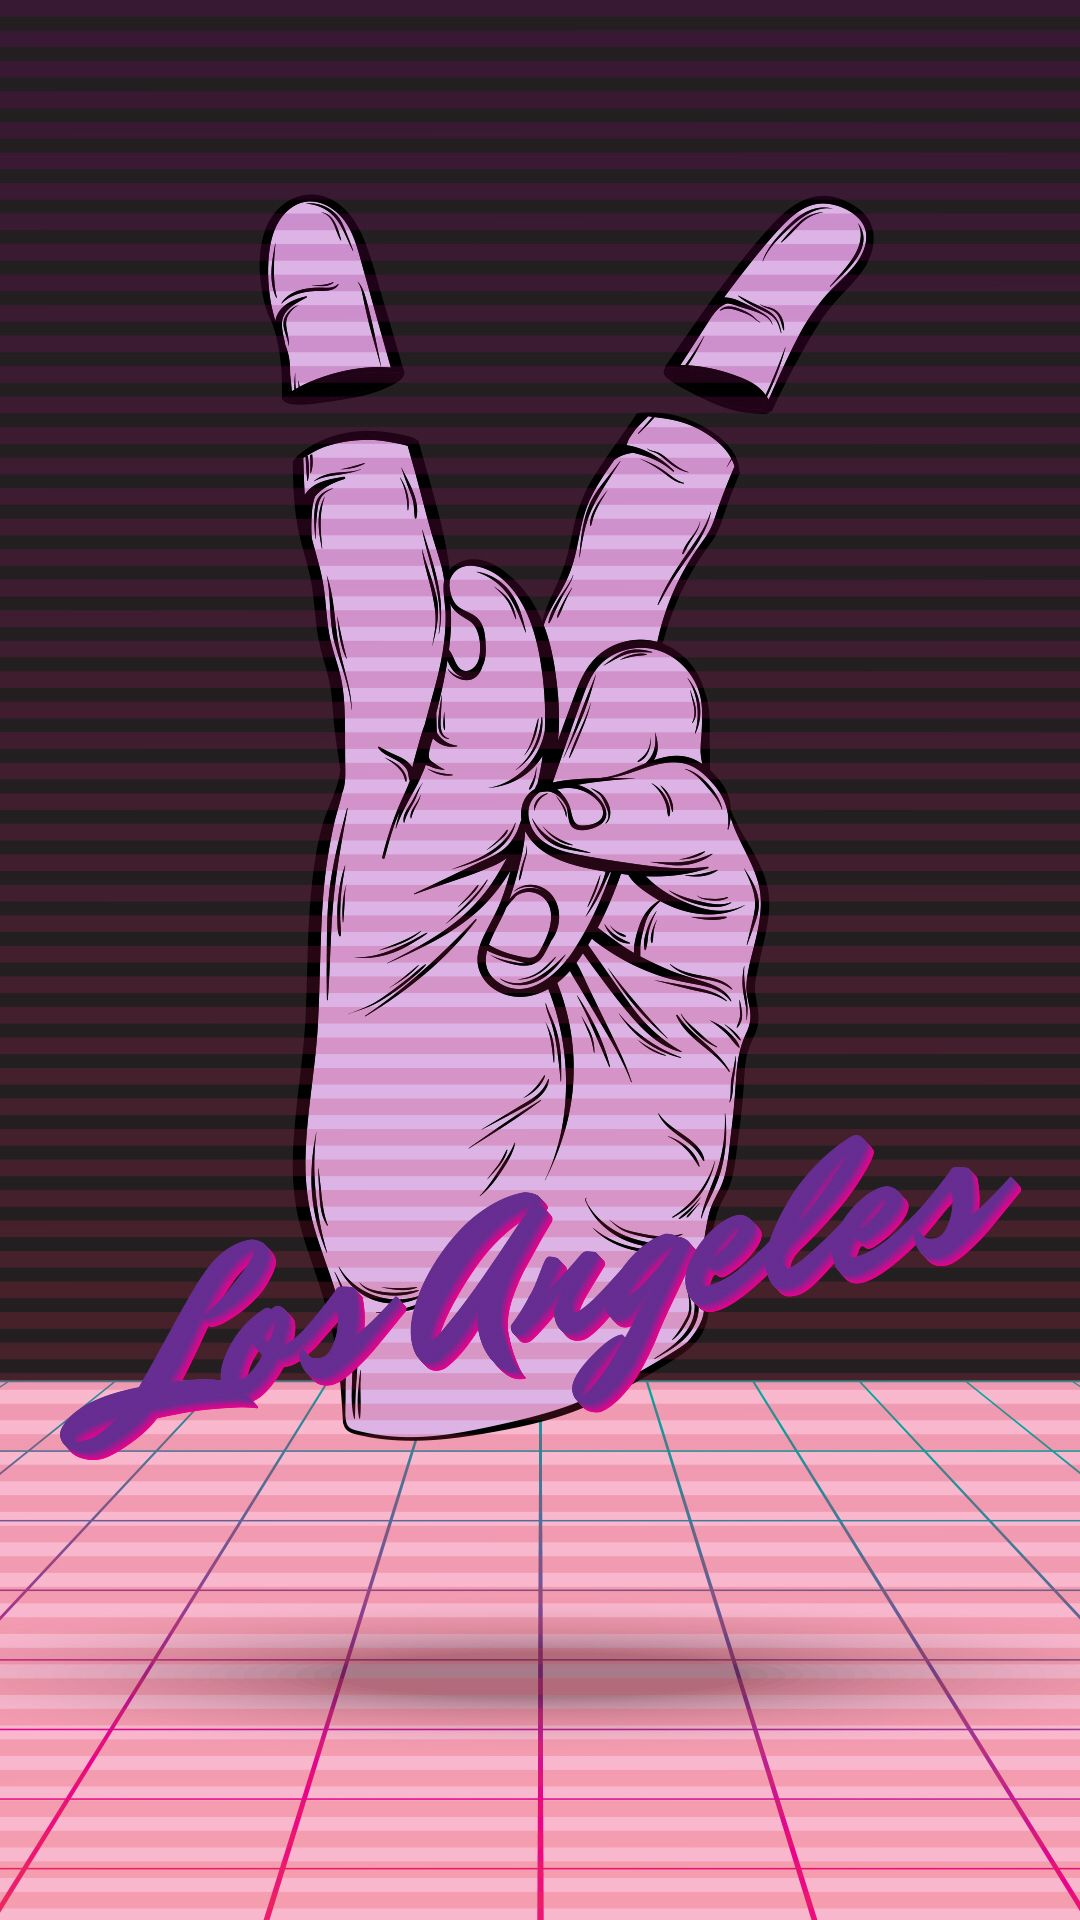 Retro neon wallpaper for iPhone XS from Vibe App Neon